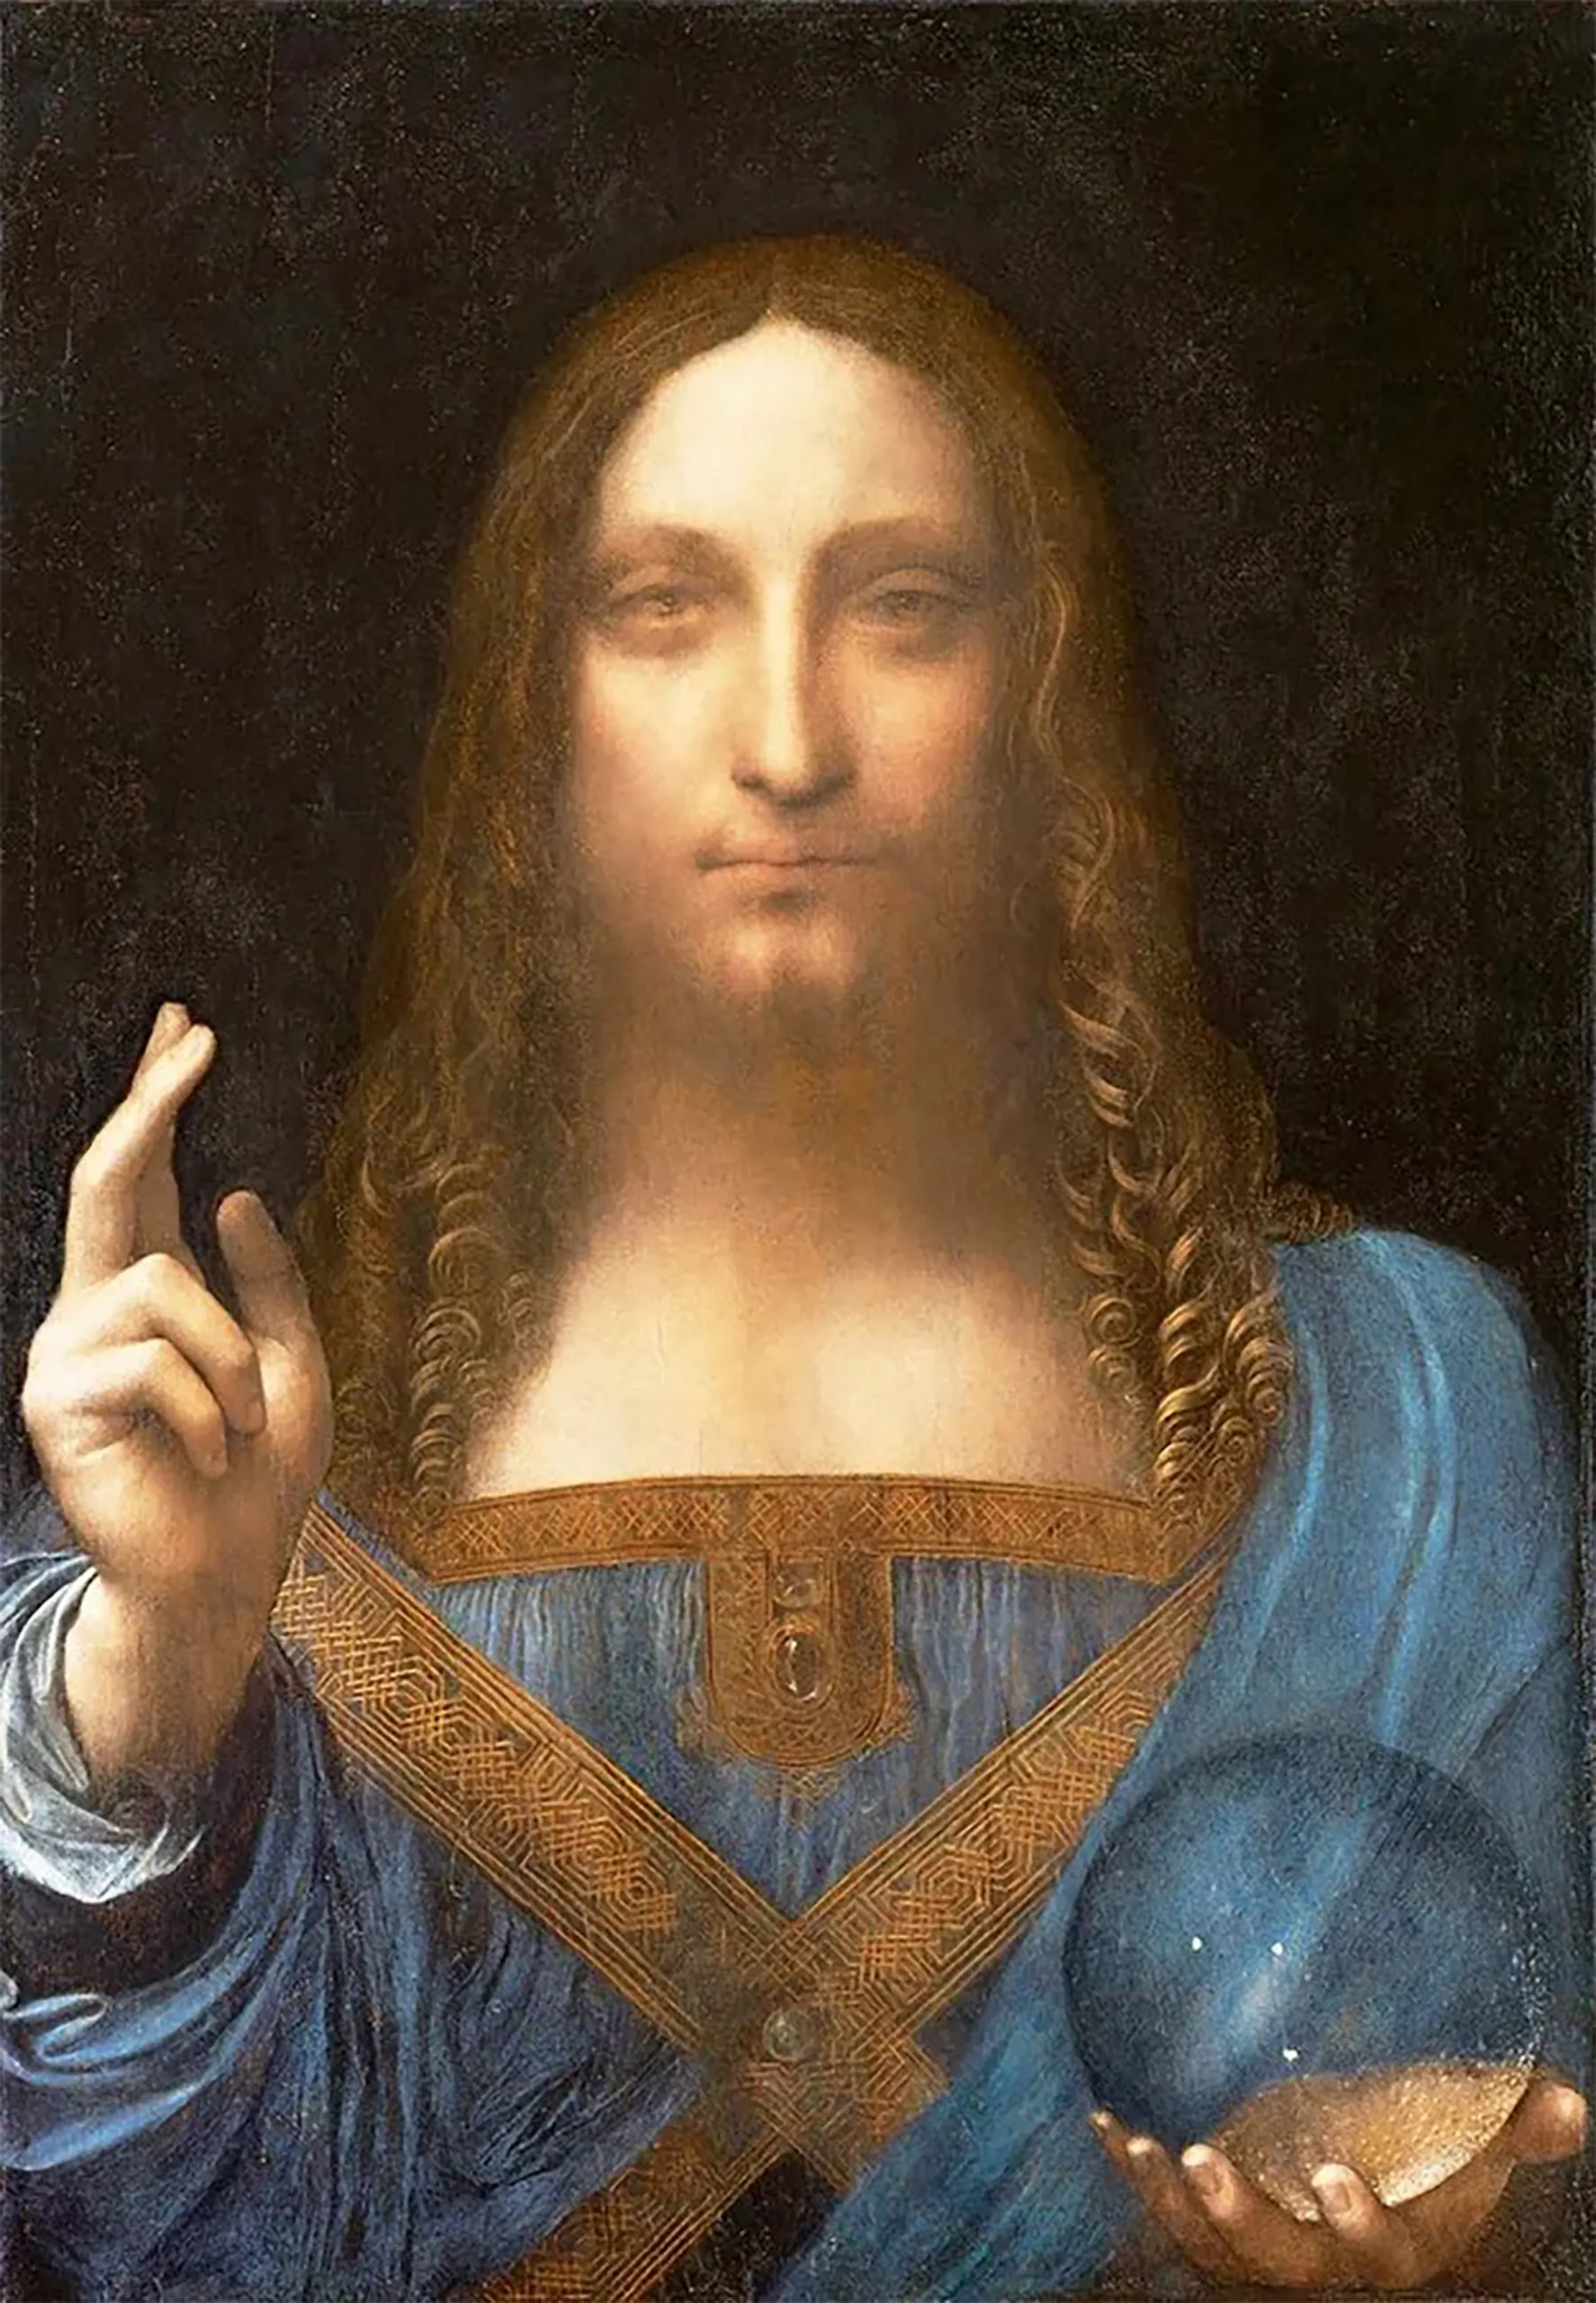 Christ-Salvator-Mundi